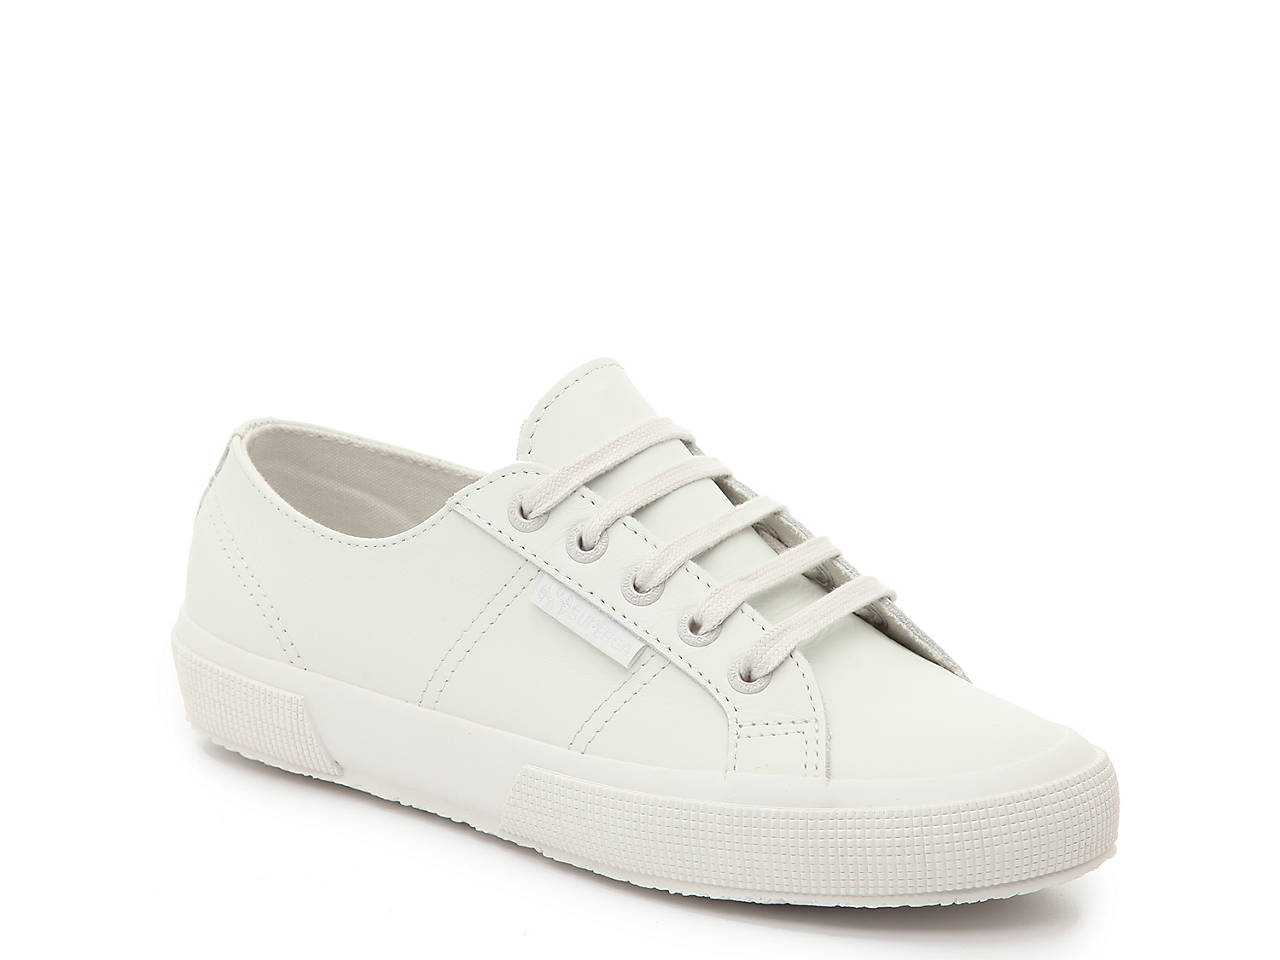 Superga 2750 Leather Sneaker Women s Shoes  7c41b5bfd